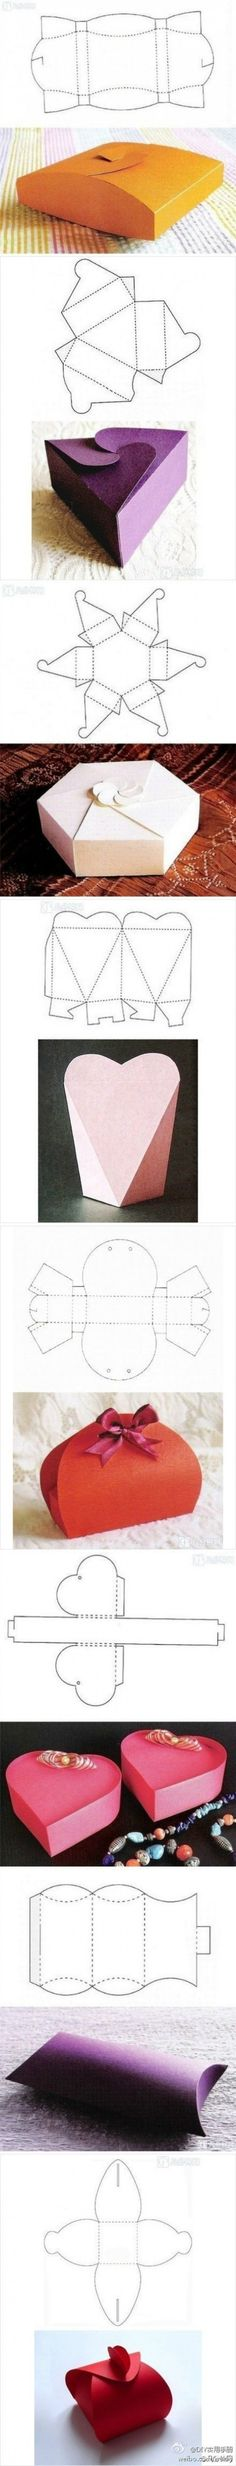 New origami box template patterns ideas Diy Gift Box, Diy Box, Gift Boxes, Favour Boxes, Candy Boxes, Fun Crafts, Diy And Crafts, Arts And Crafts, Kirigami